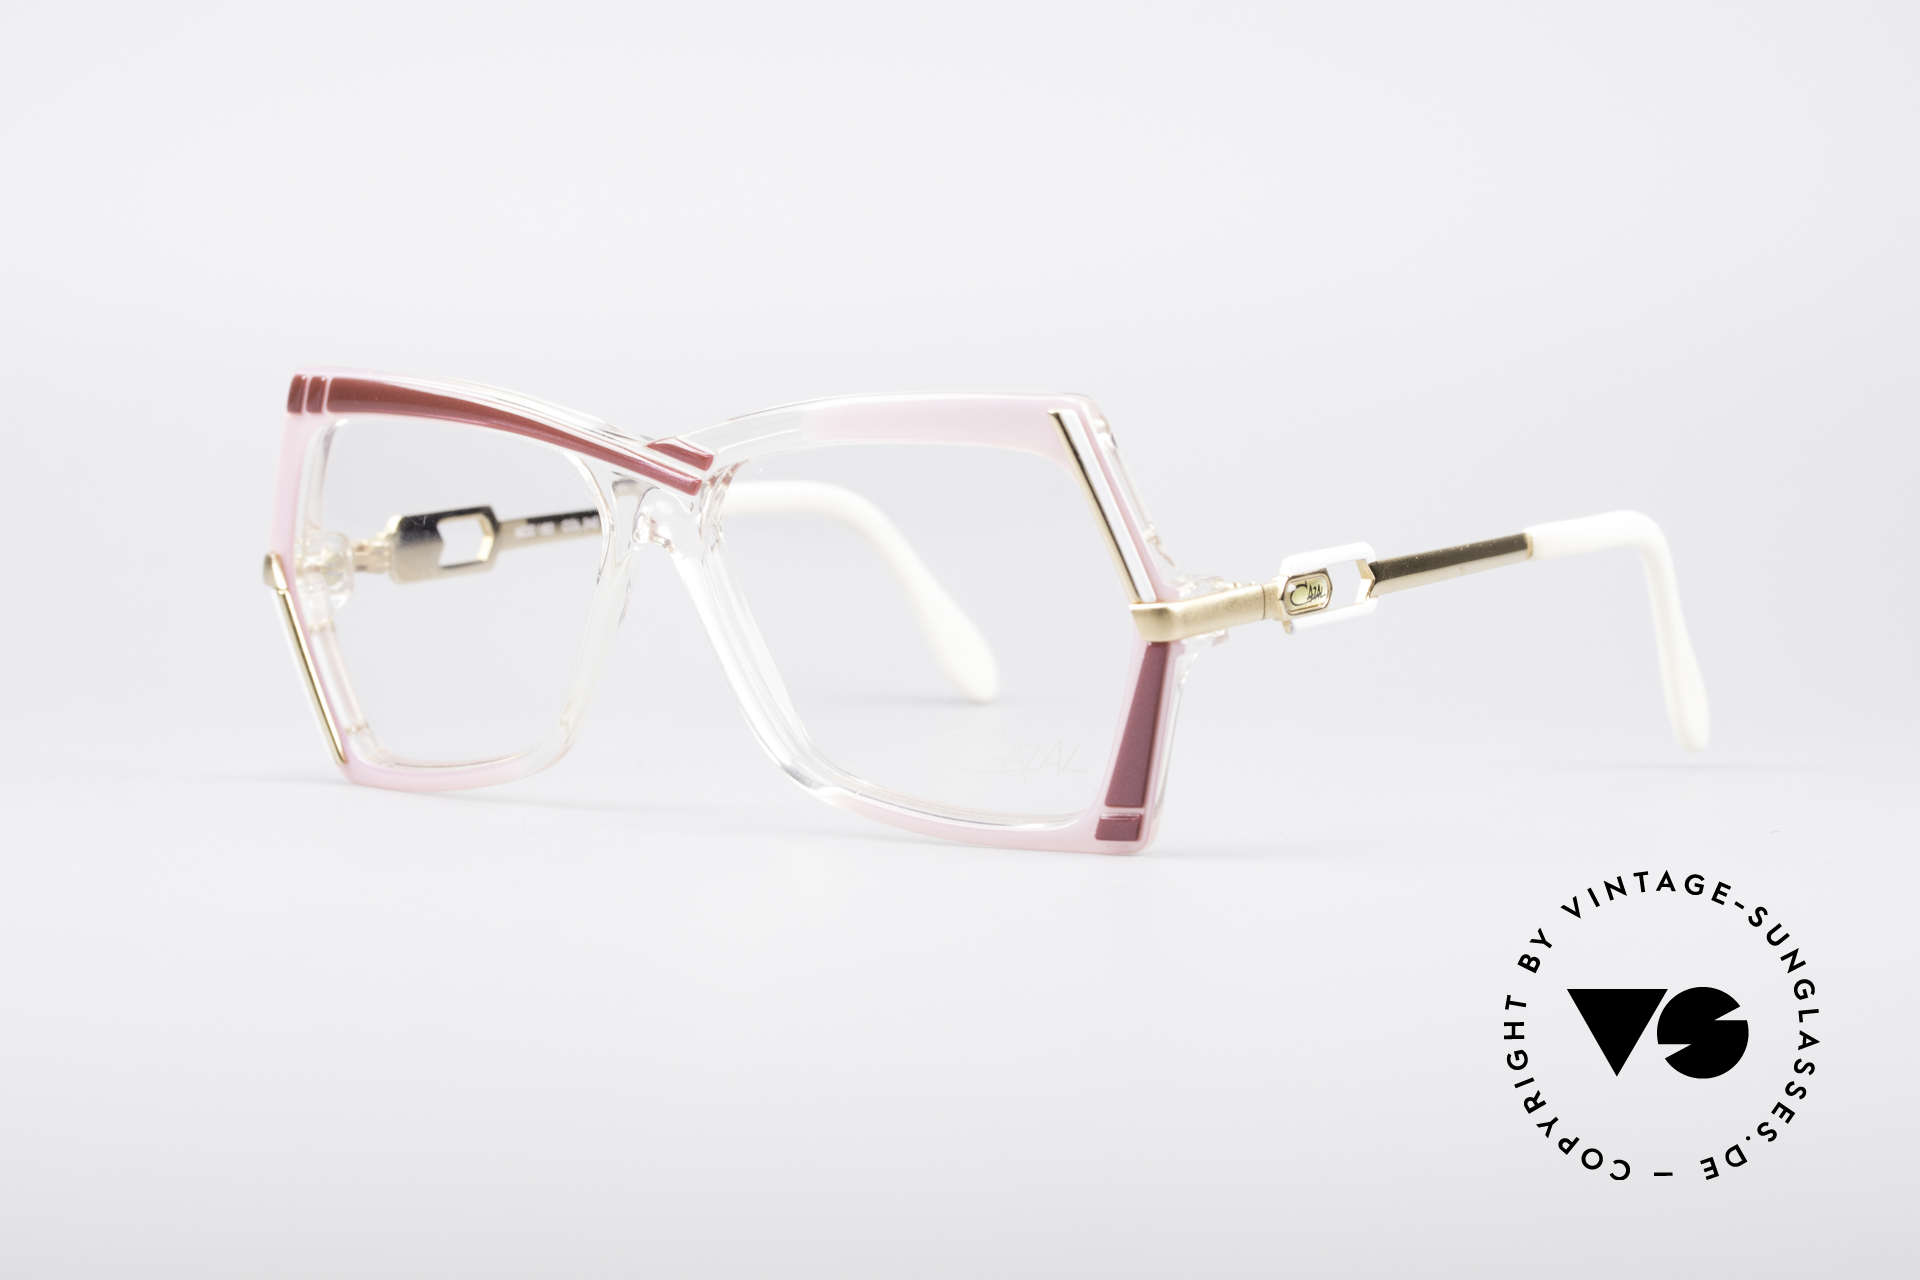 Cazal 183 1980's Hip Hop Eyeglasses, part of the legendary US HipHop scene in the 80s, Made for Women